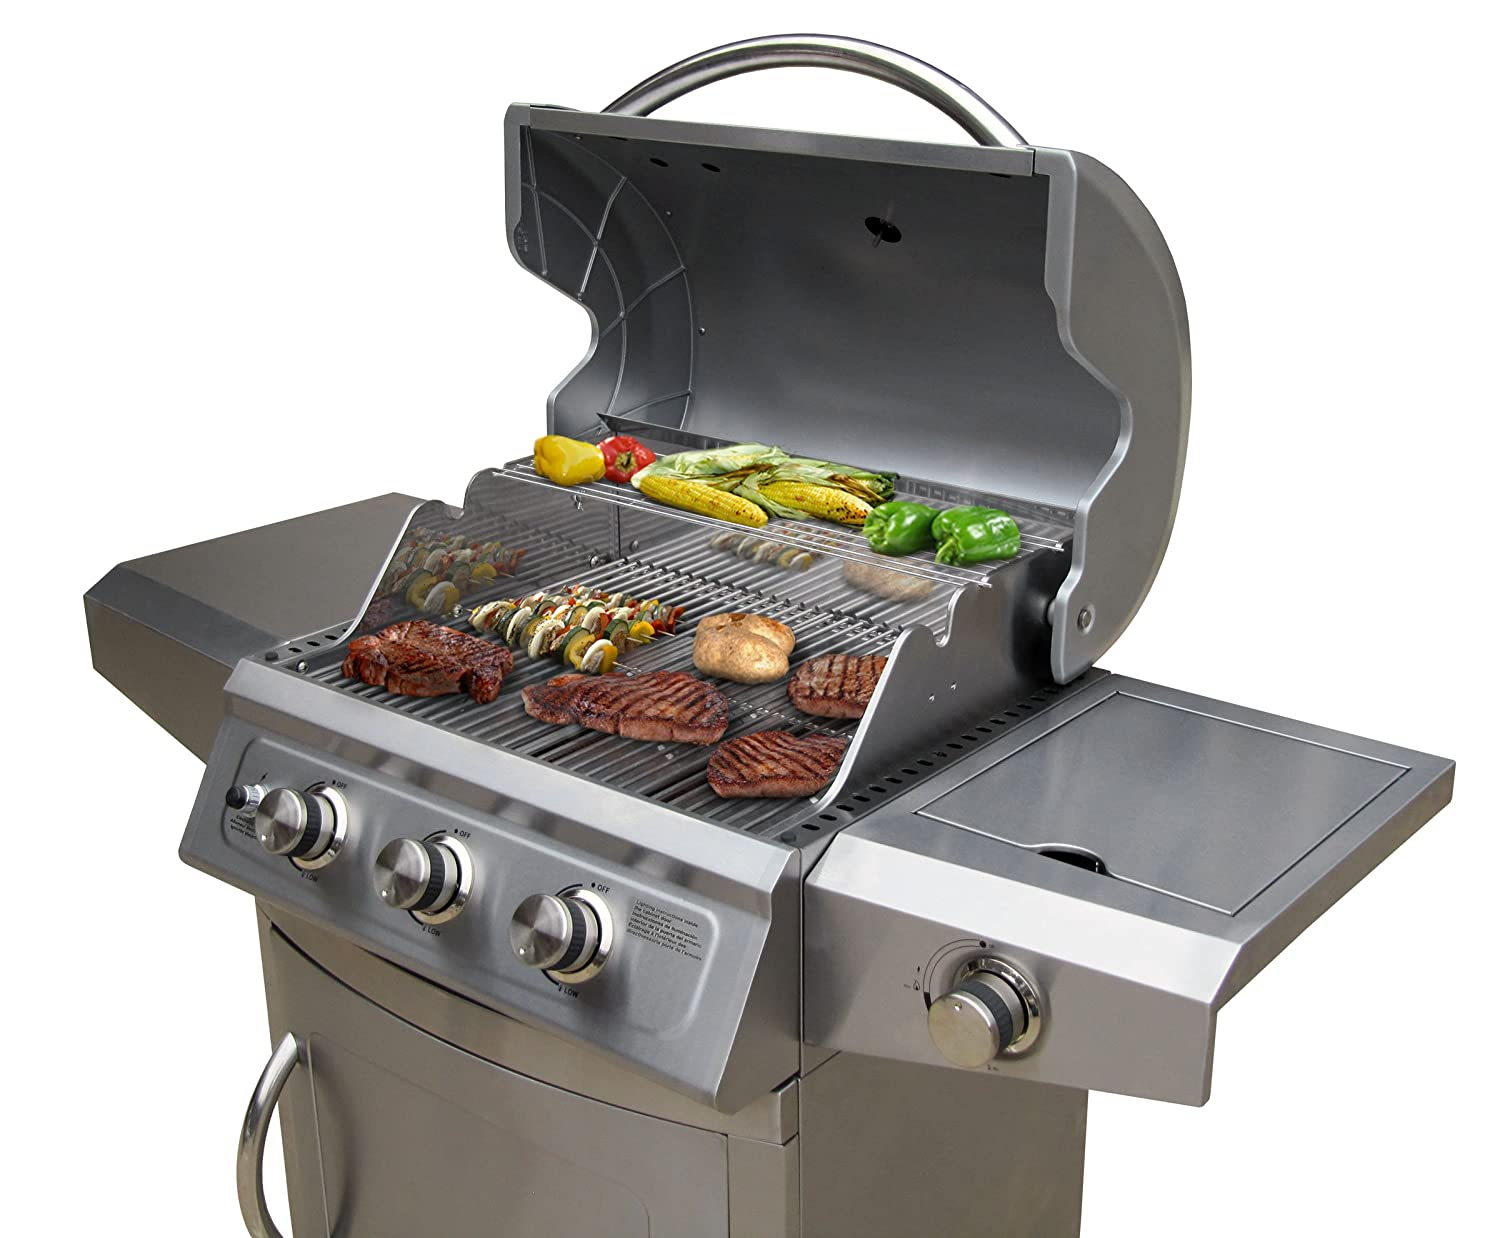 Landmann Gasgrill Welches Gas : Amazon landmann falcon burner lp gas grill with side